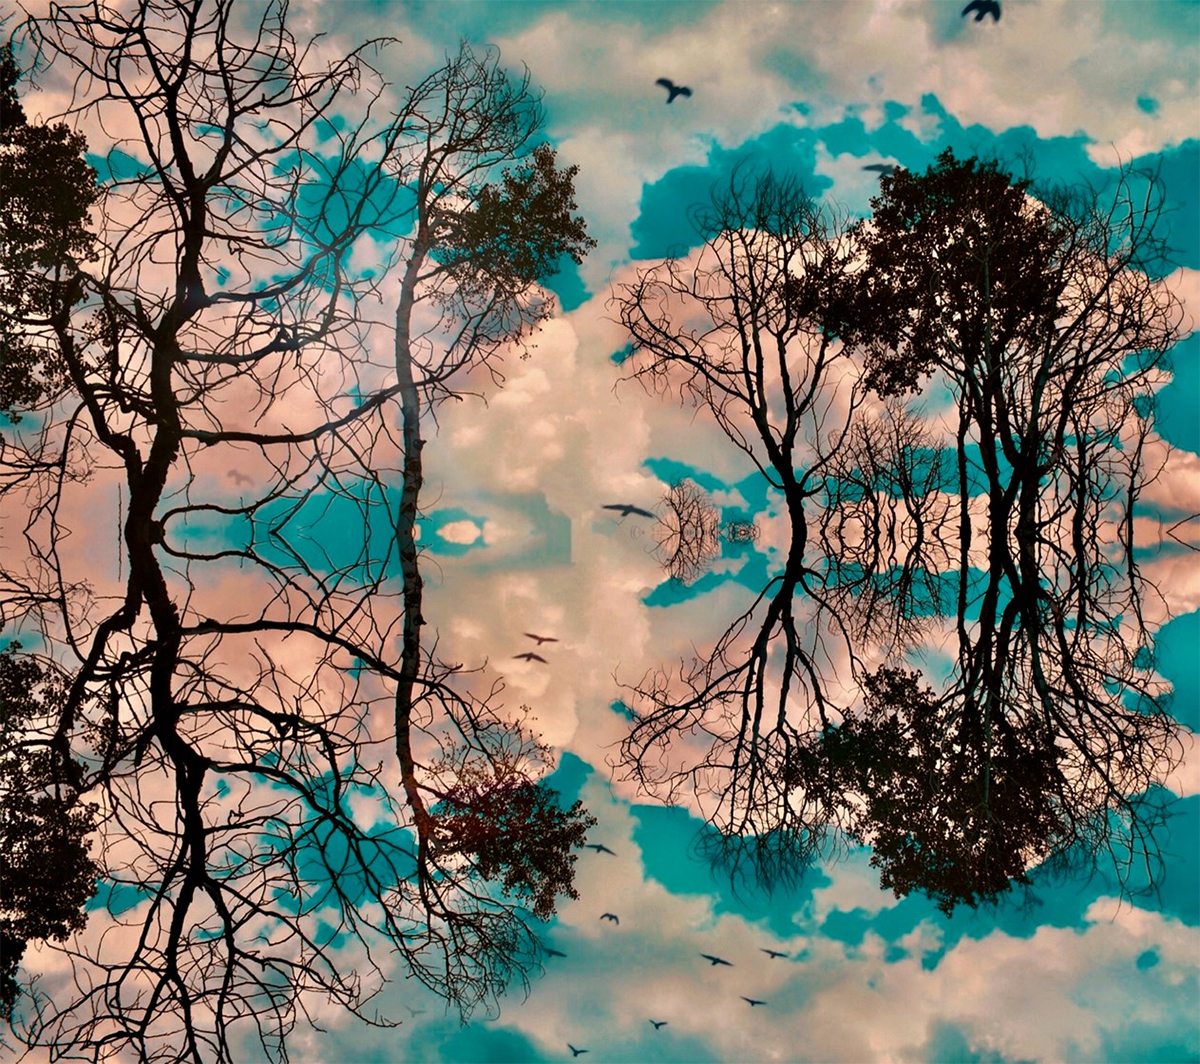 Cloud Dance by Claire Ibarra, photo of birds and trees in silhouette against a lake, mirrored on the surface of the water